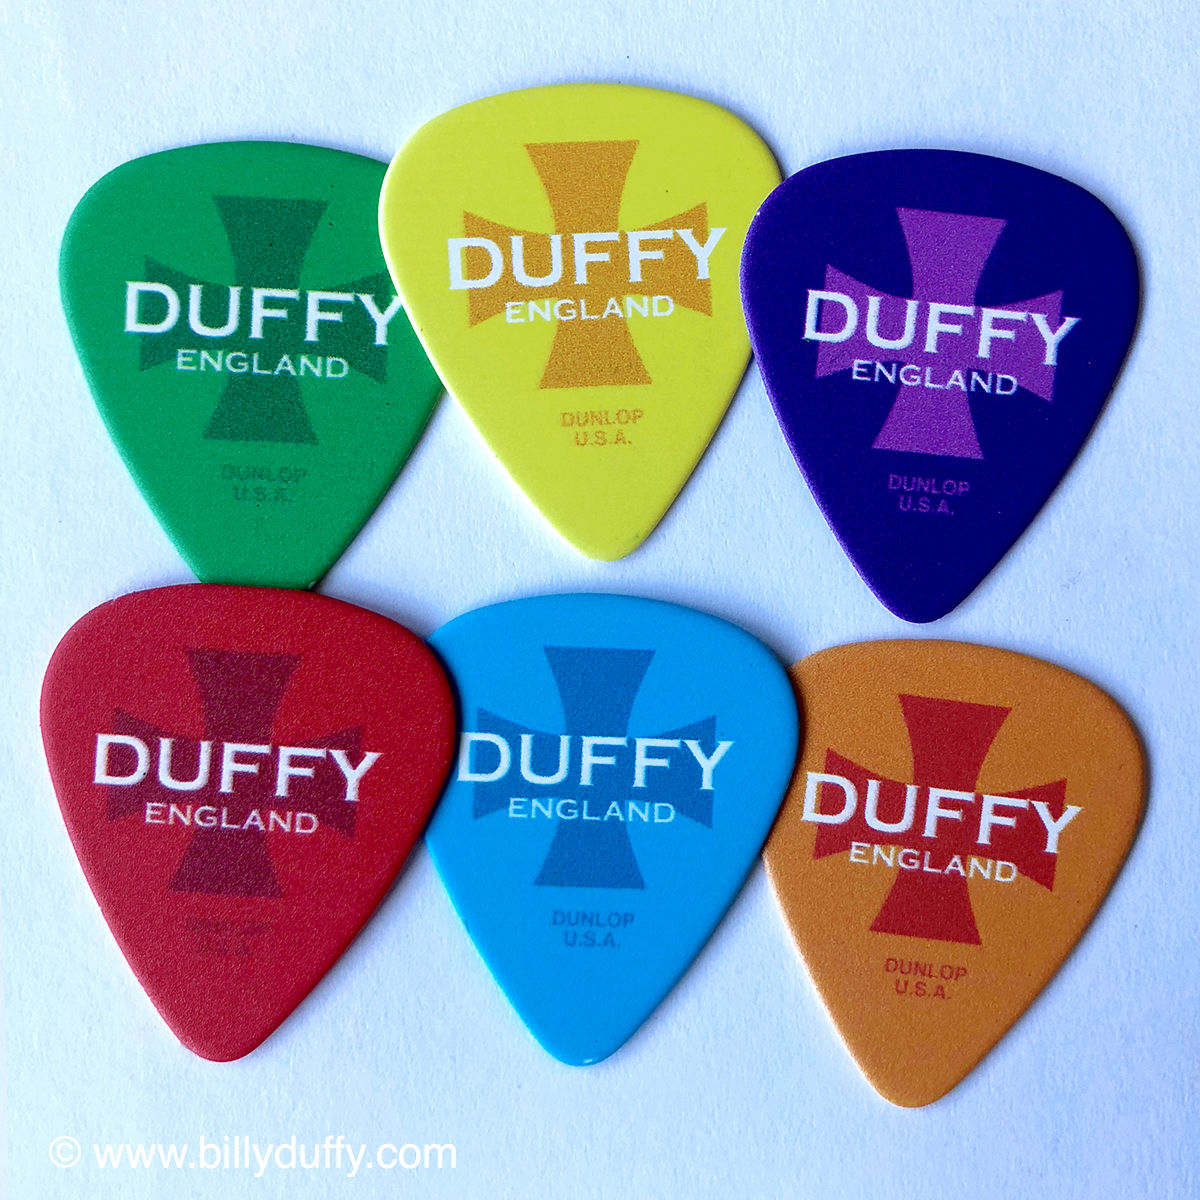 Duffy England 'Pop Art' Signed Guitar Pick Set - product images  of